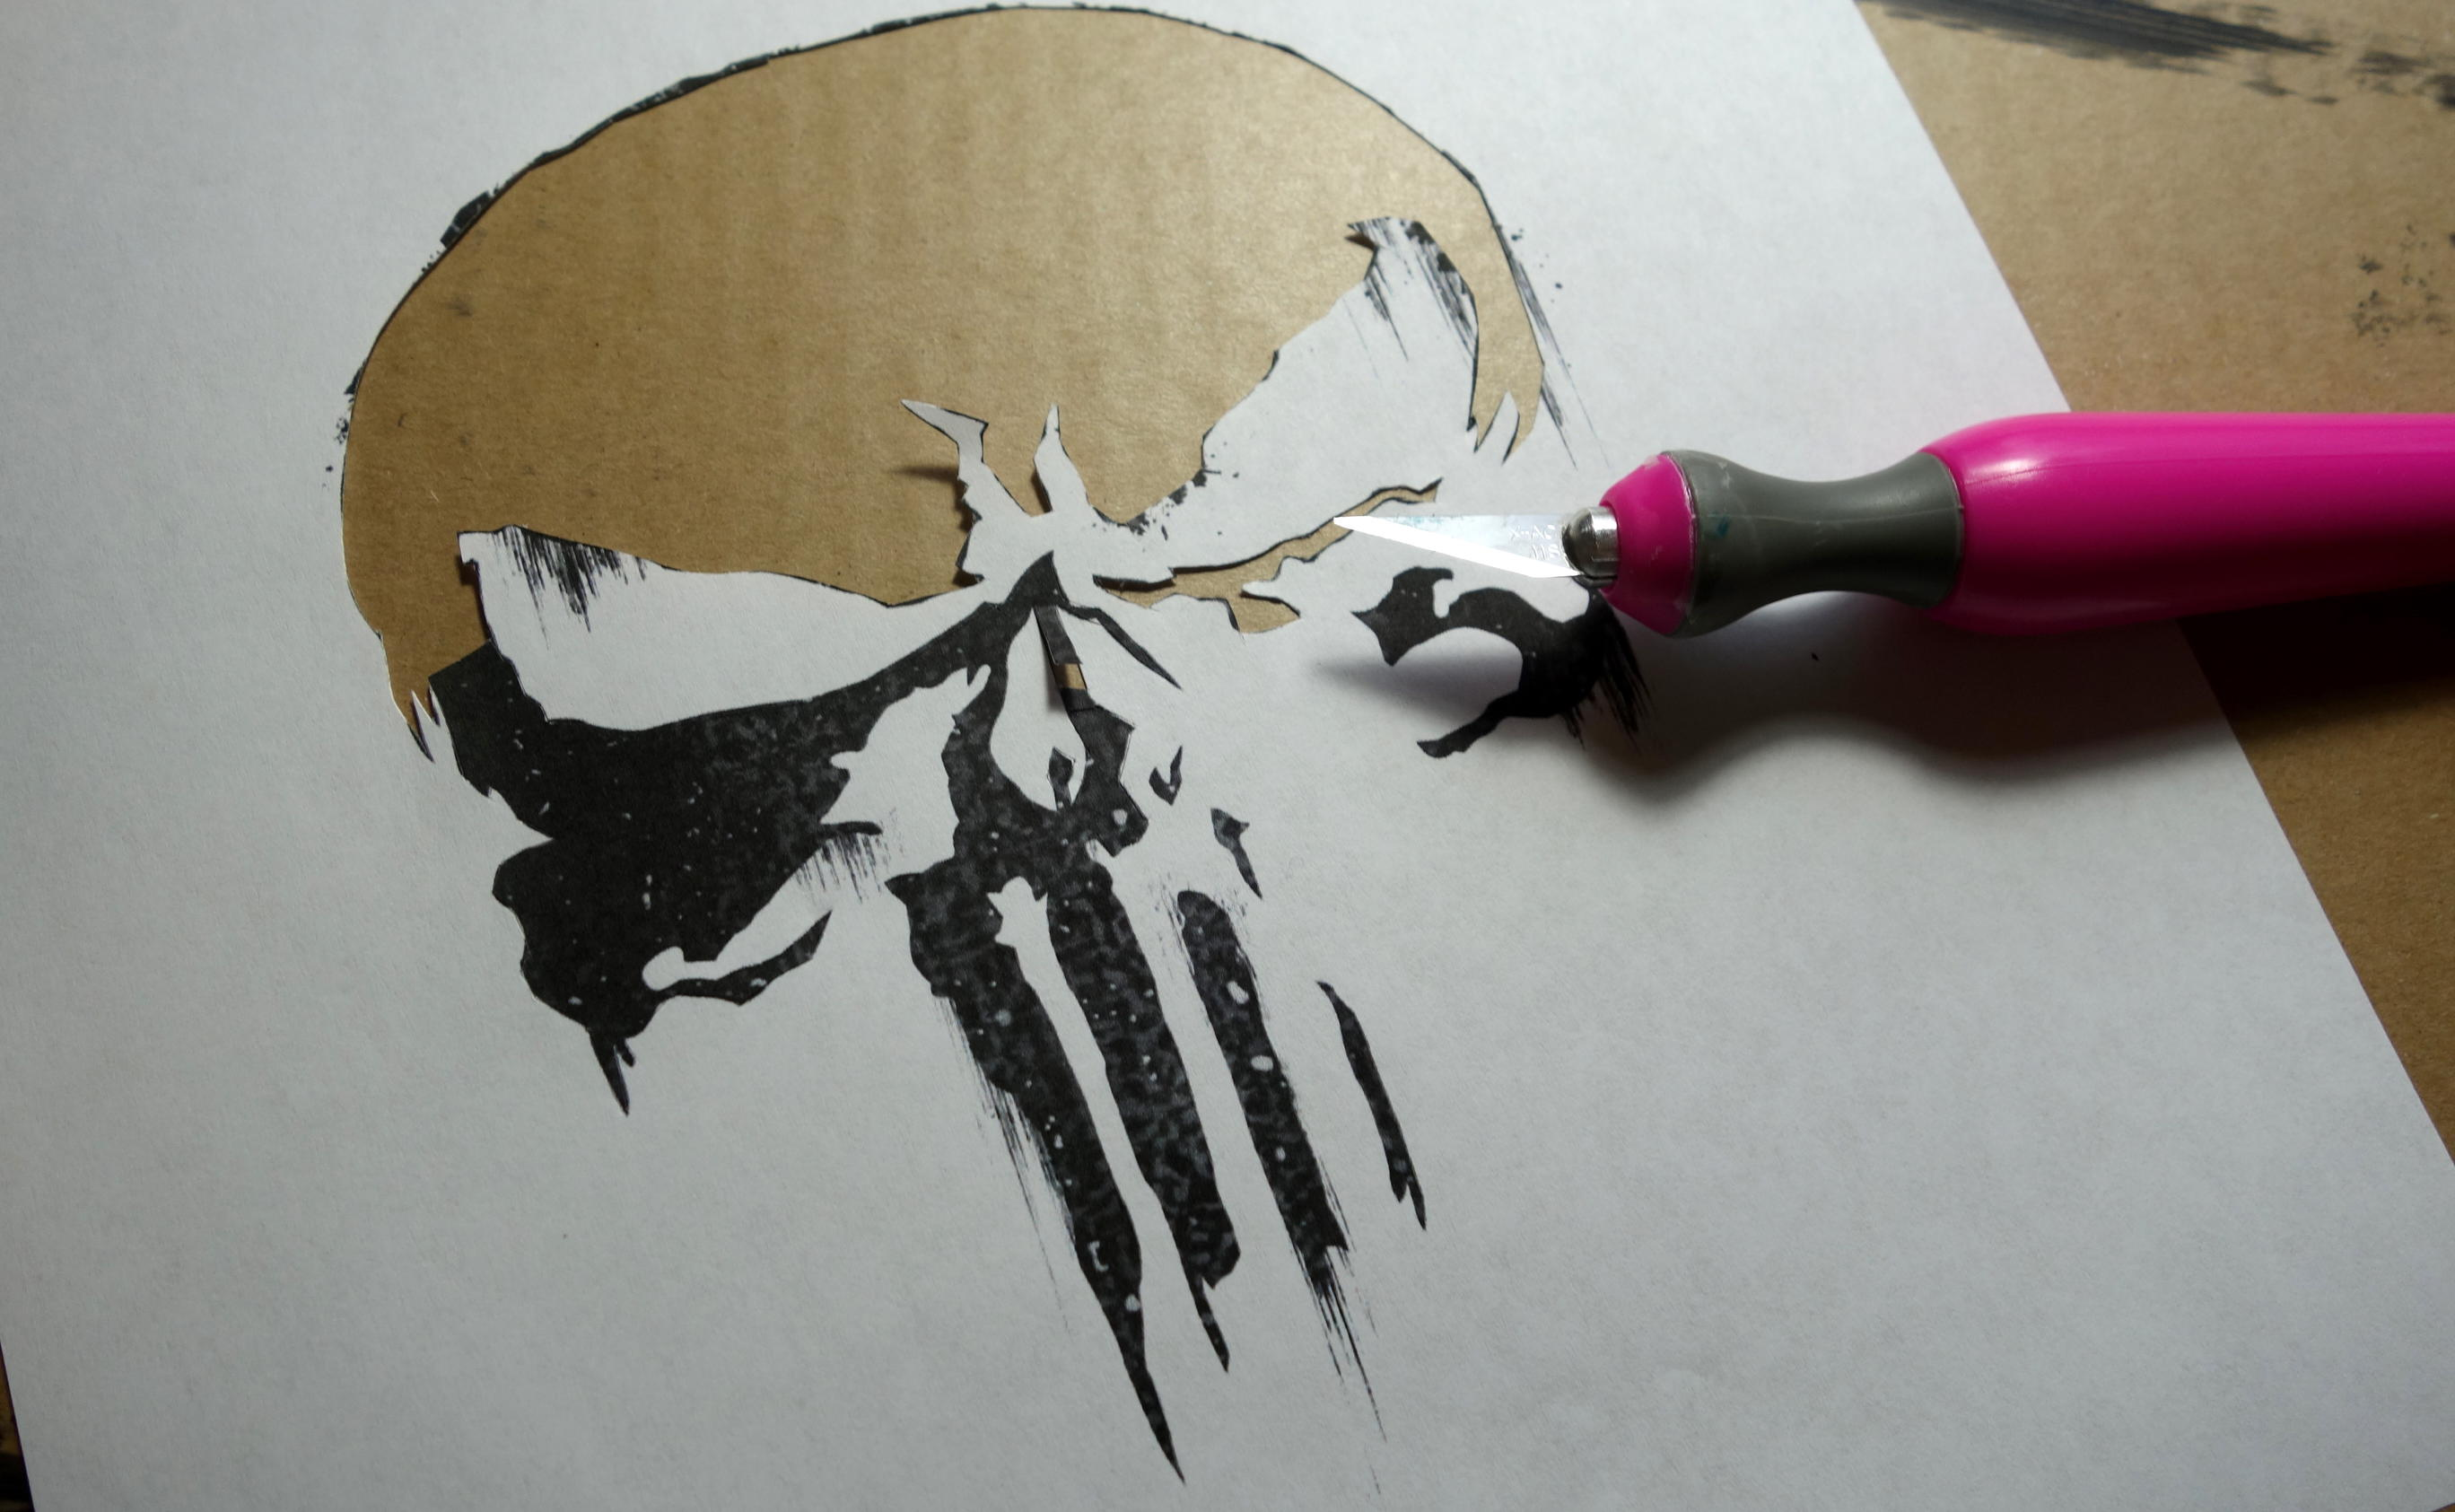 DIY Punisher Jigsaw Puzzle Craft - Cut Stencil